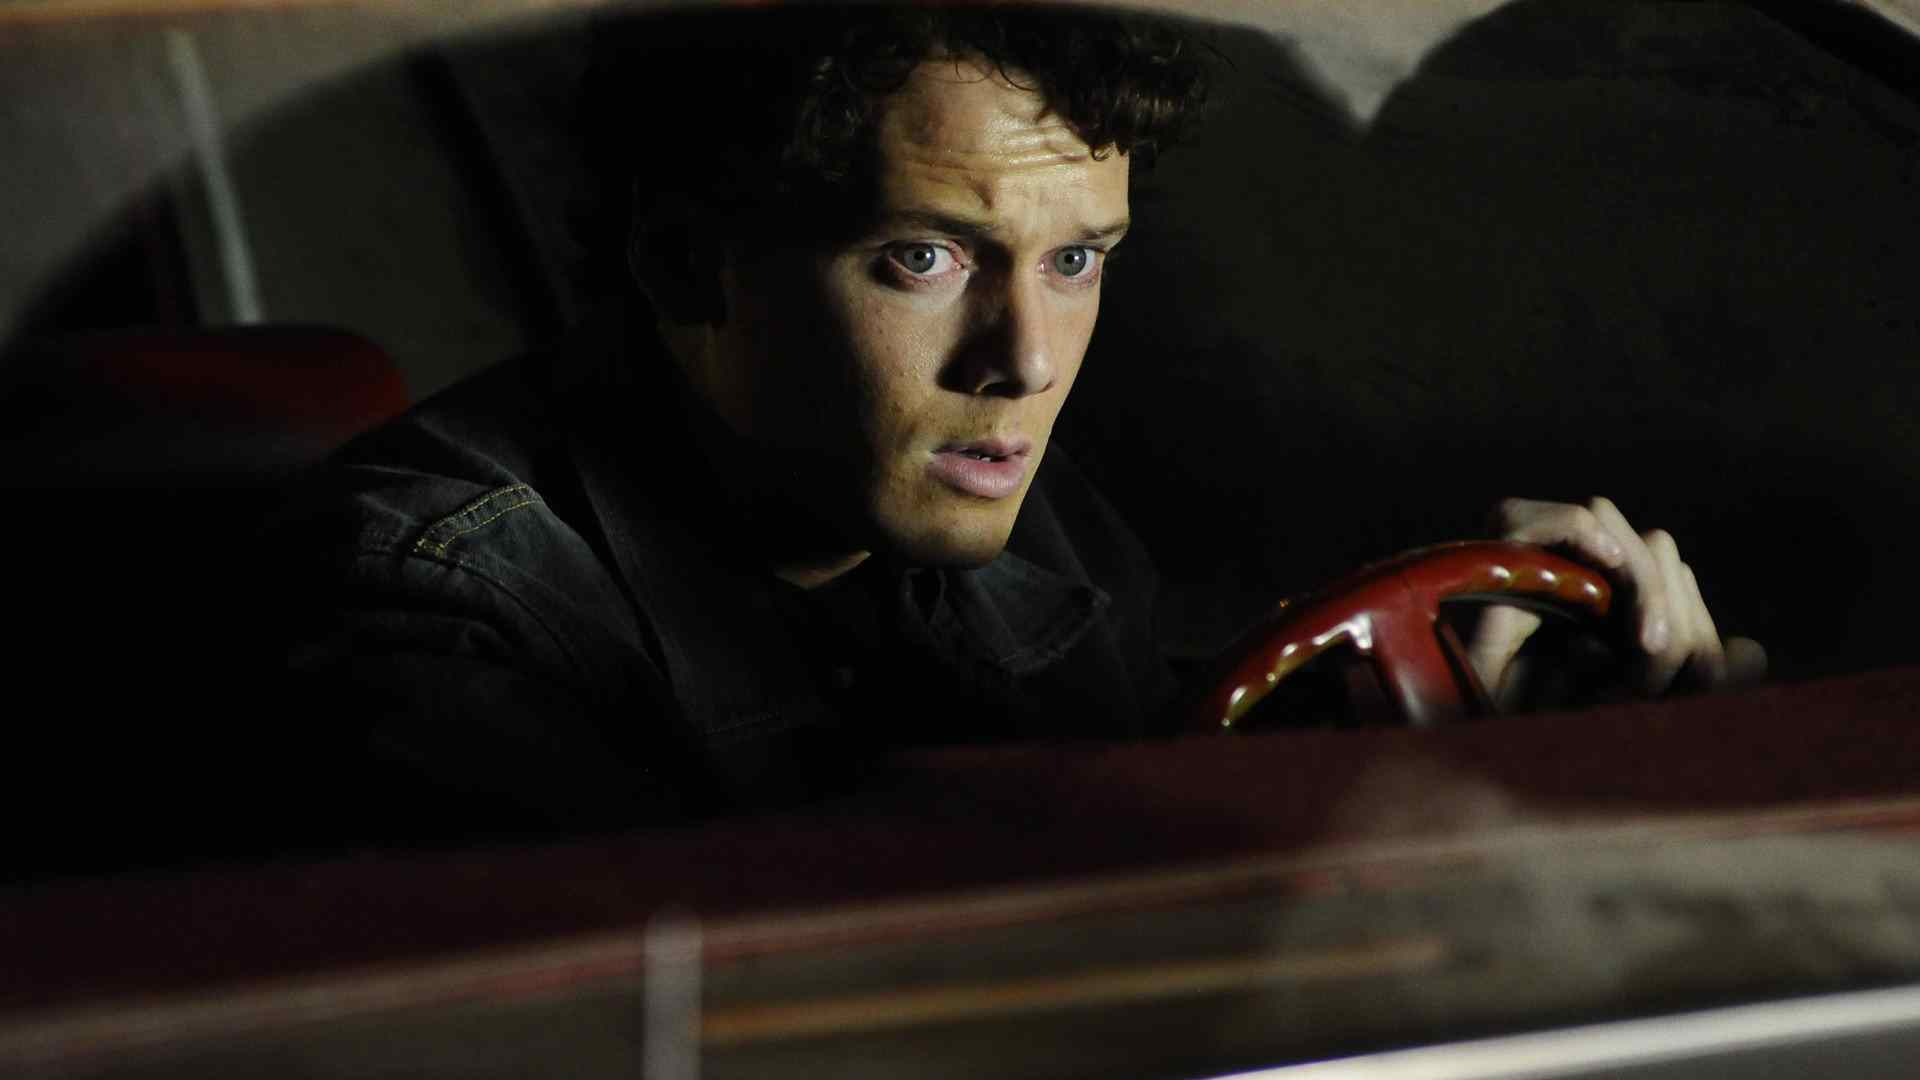 Anton Yelchin who plays Odd Thomas in the movie of the same name directed by Stephen Sommers.